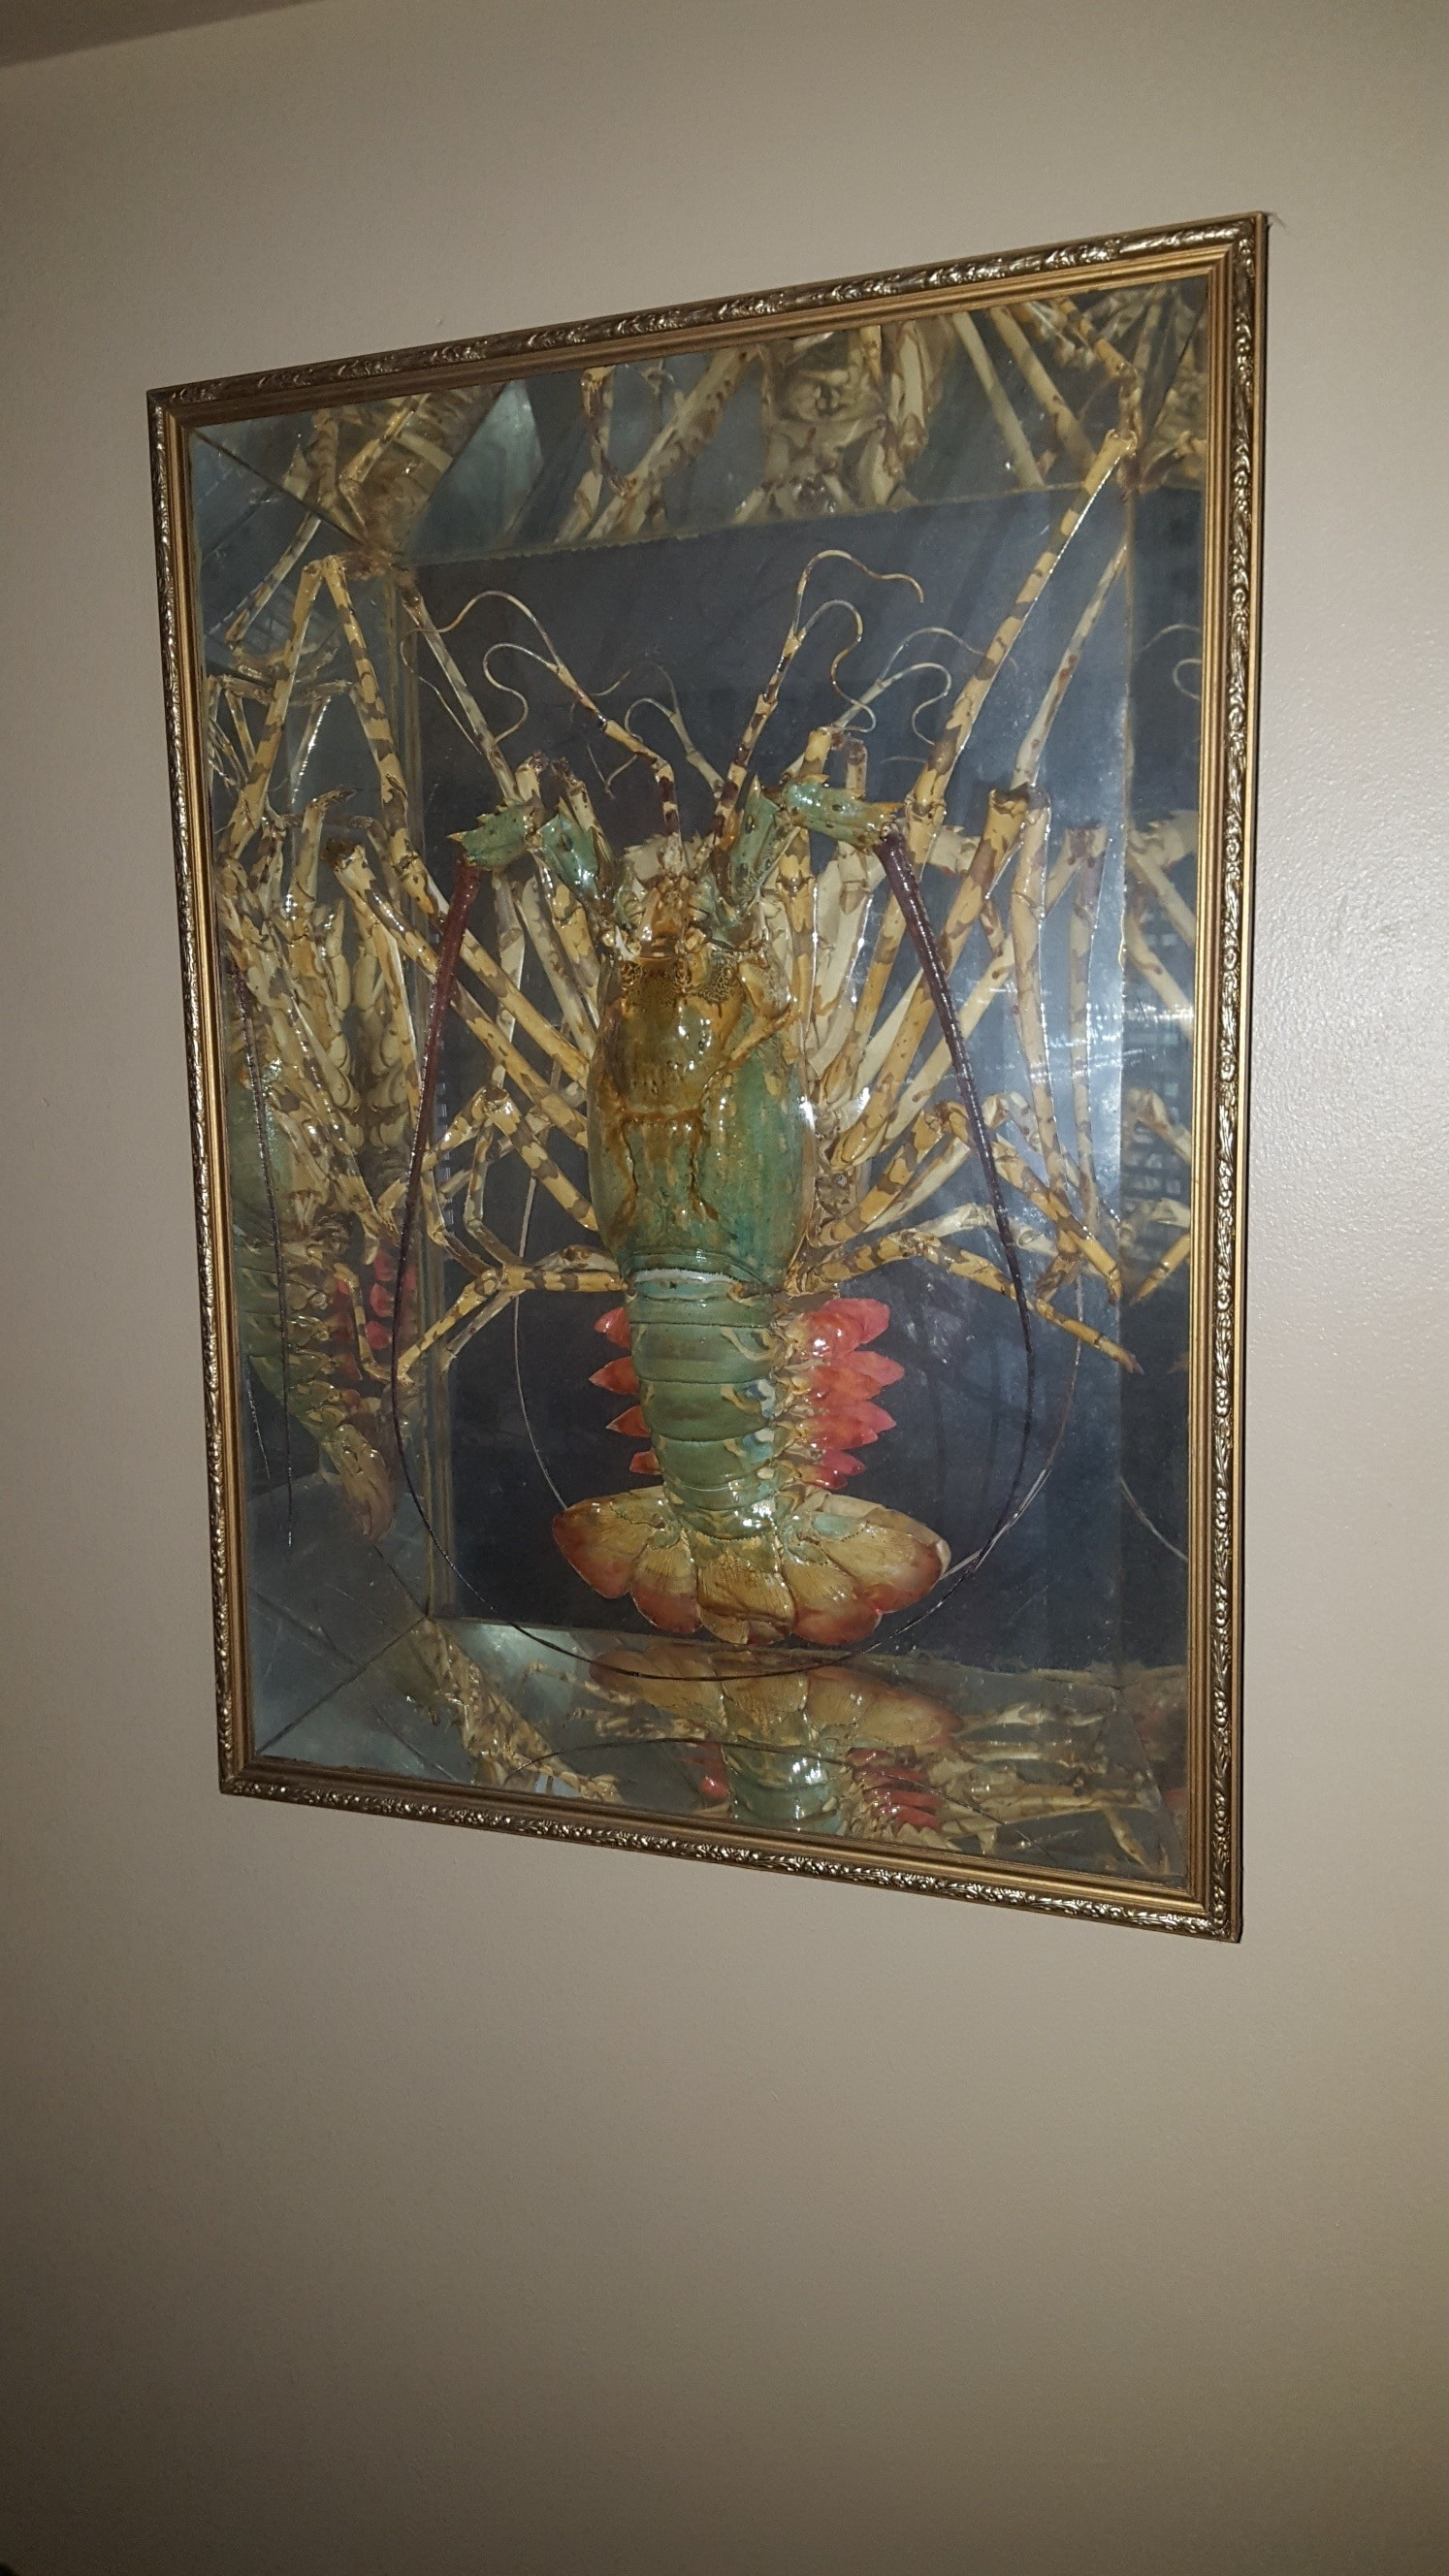 Giant lobster trophy